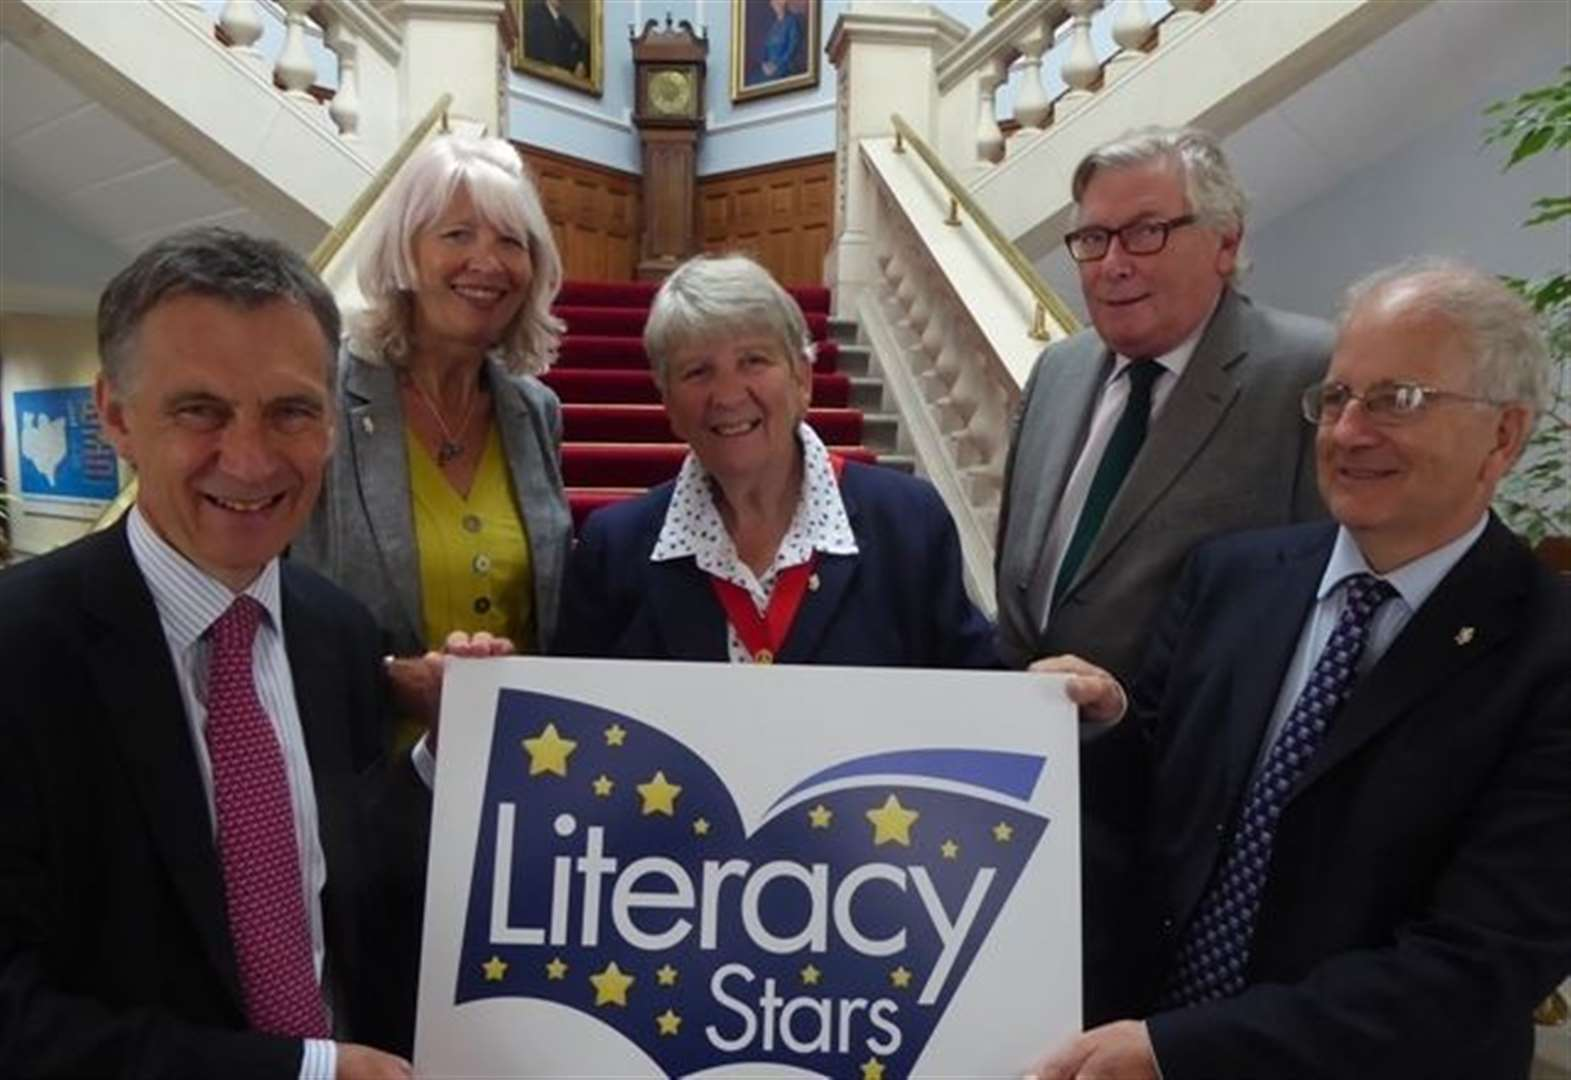 Councillor cash backs young literacy leaders